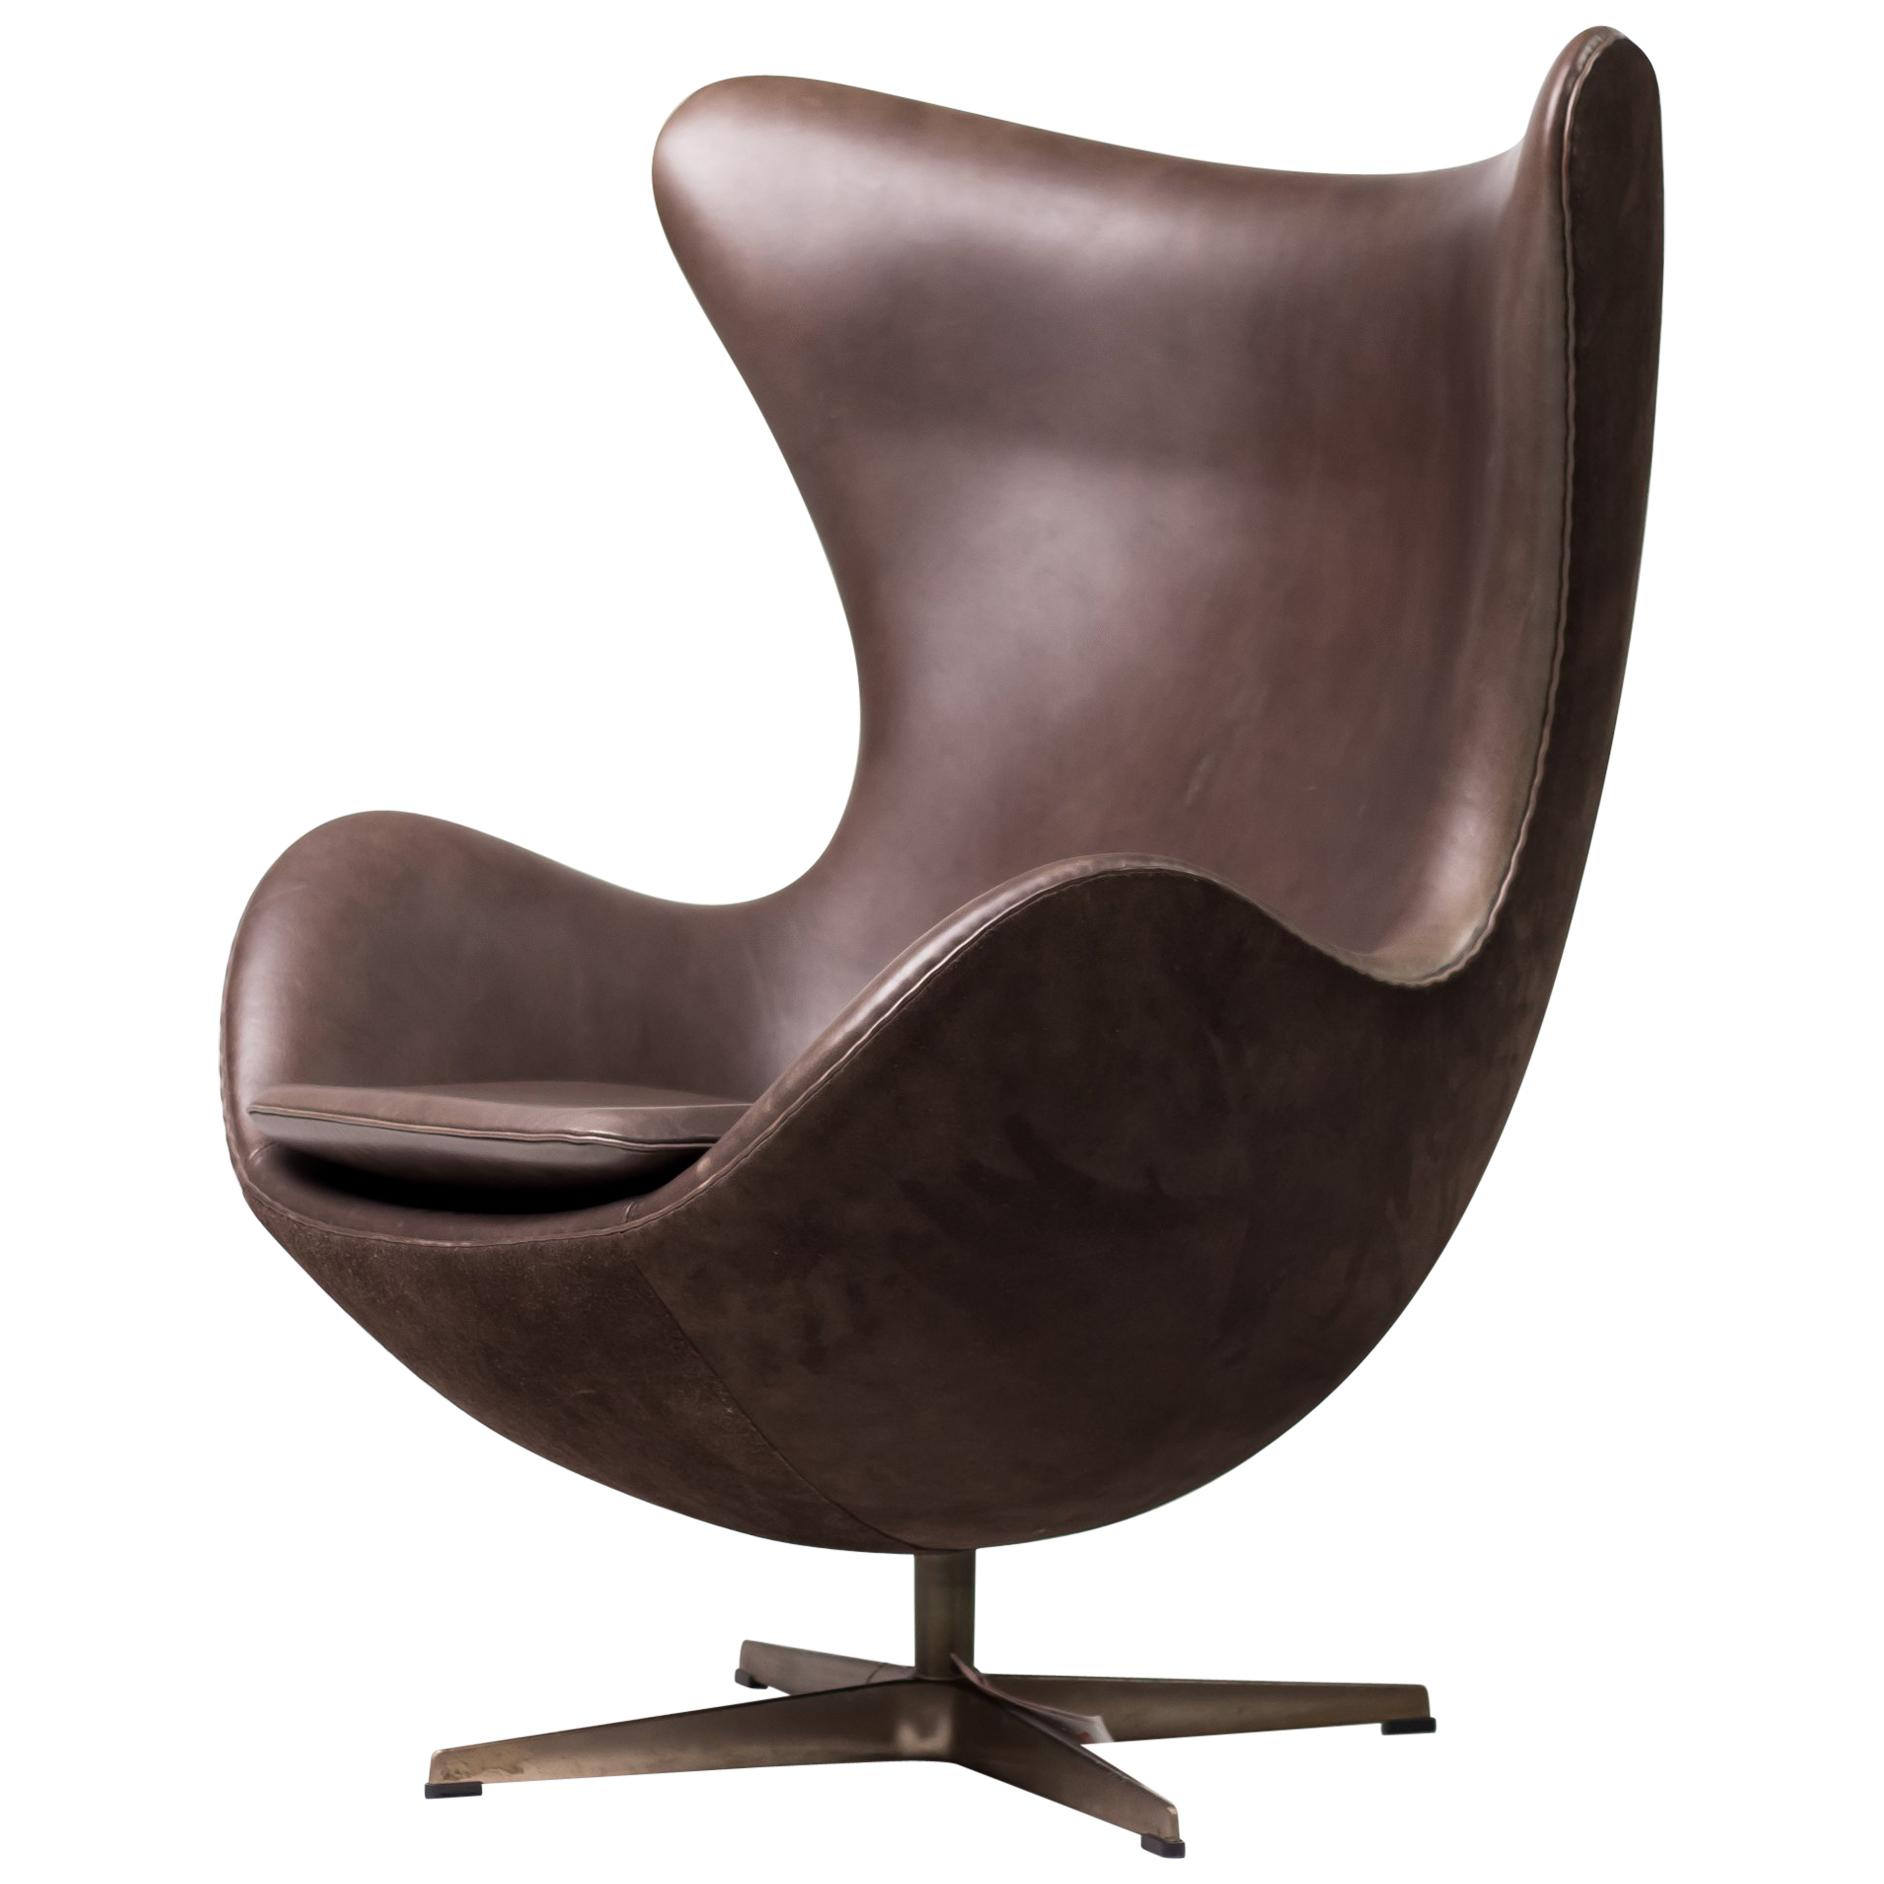 Arne Jacobsen Egg Chair Limited Edition Golden Egg Chair By Arne Jacobsen